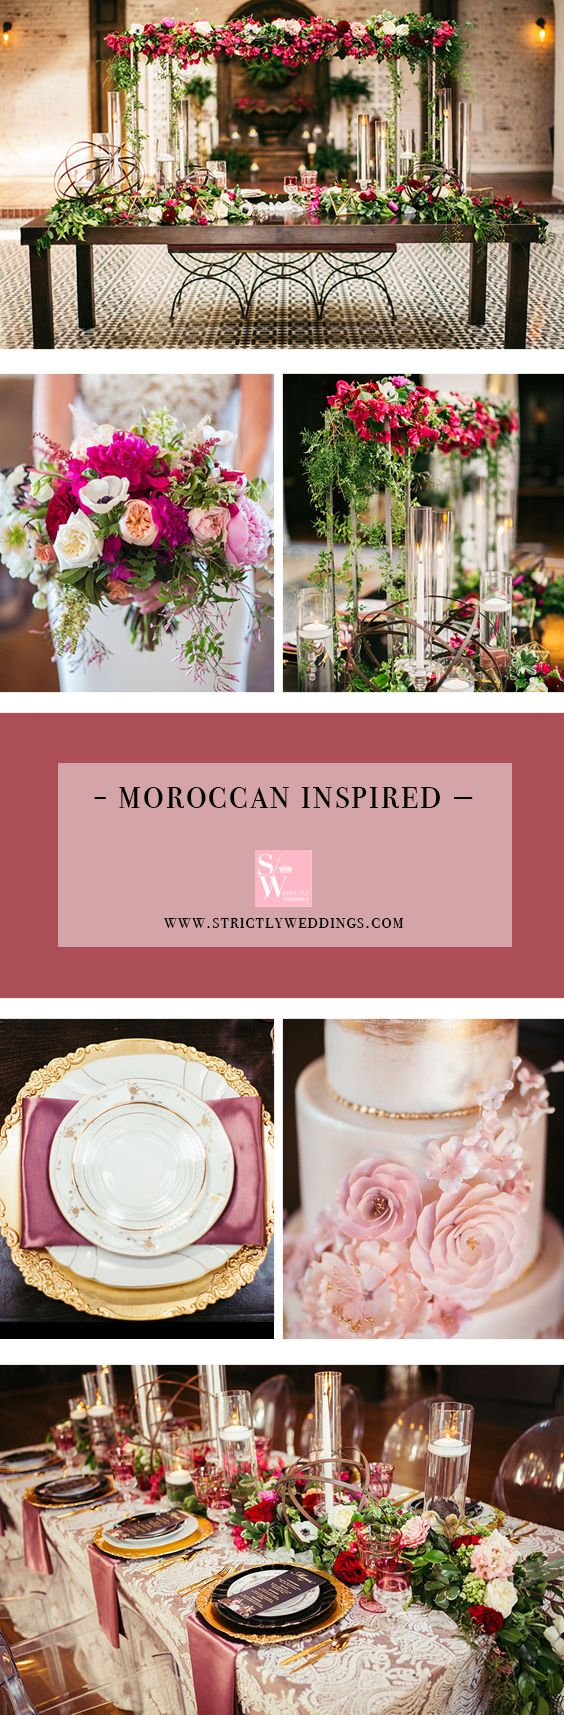 Dripping with gorgeous details and overflowing with stunning color, this Moroccan wedding inspiration was visualized by Events by Cassie and captured by Three16Photography – personally it's the best way to close out a week!